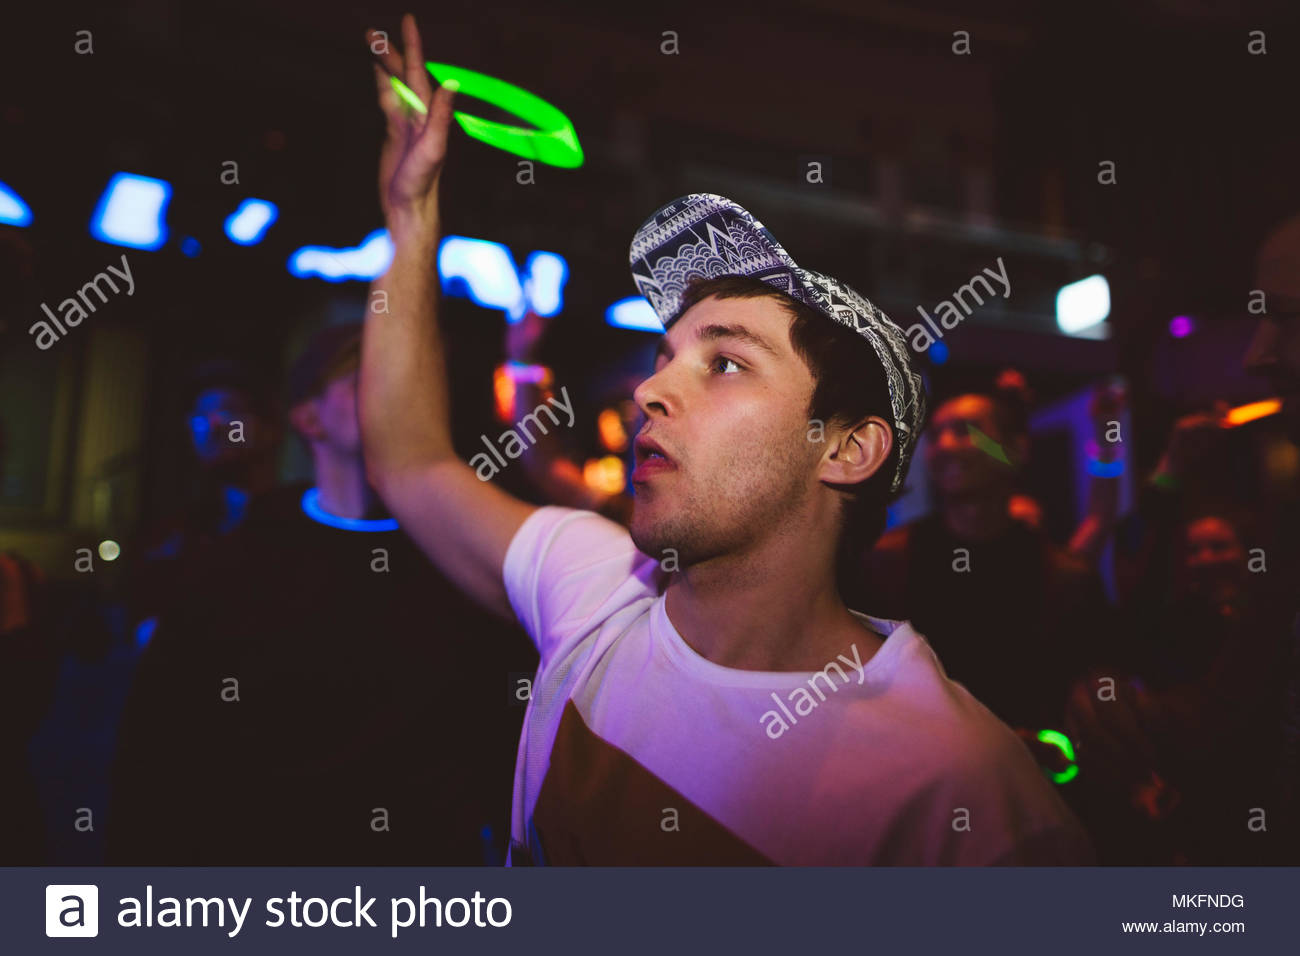 Confident young male millennial dancing, waving neon LED necklace in nightclub - Stock Image